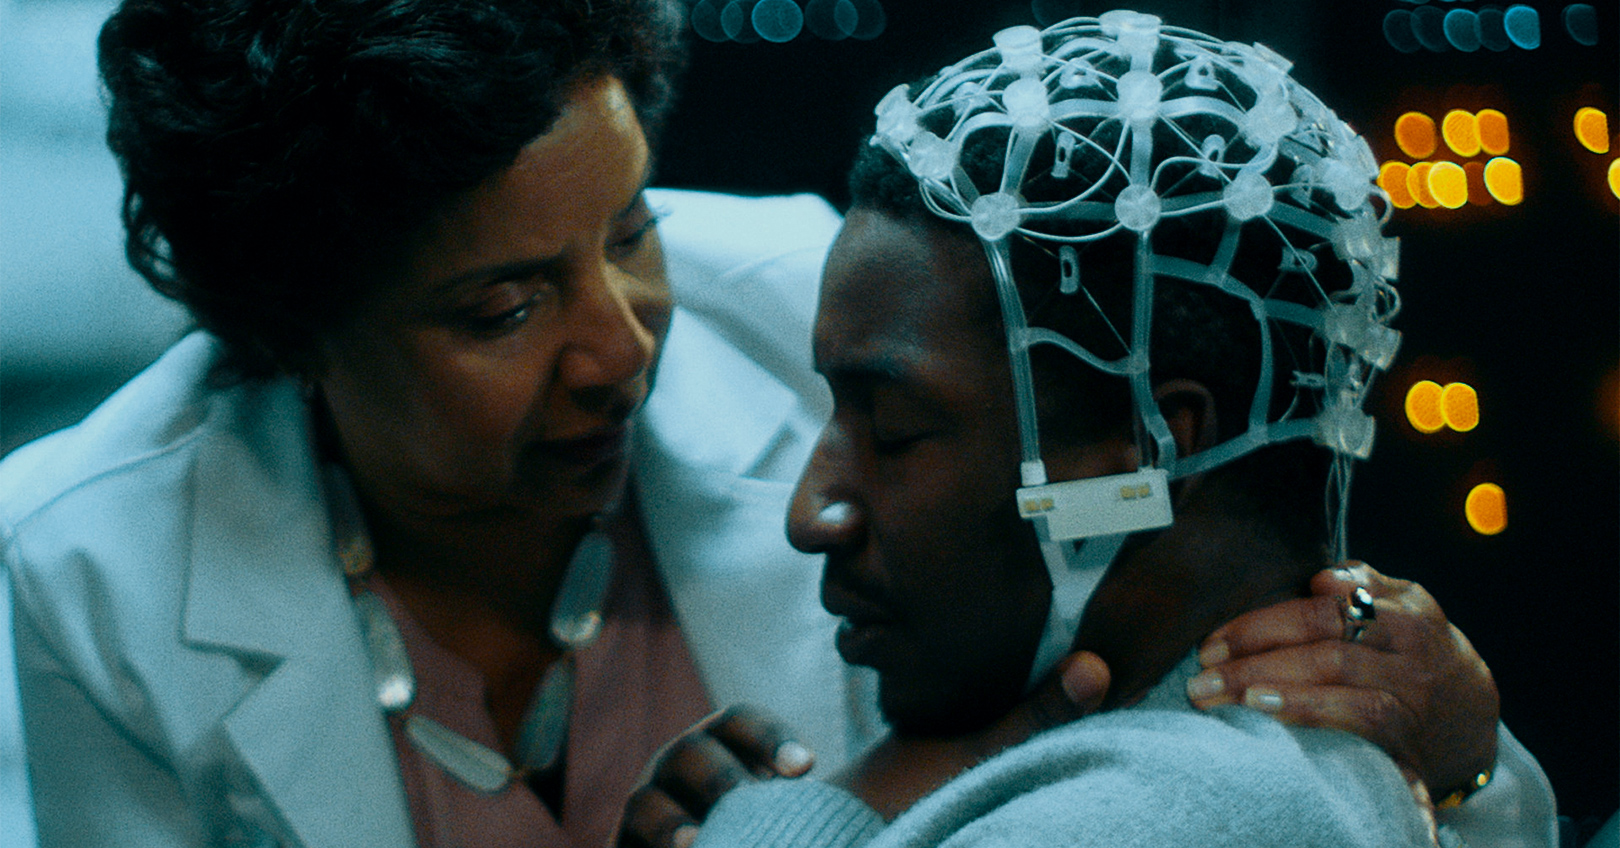 Black Box - Phylicia Rashad and Mamoudou Athie